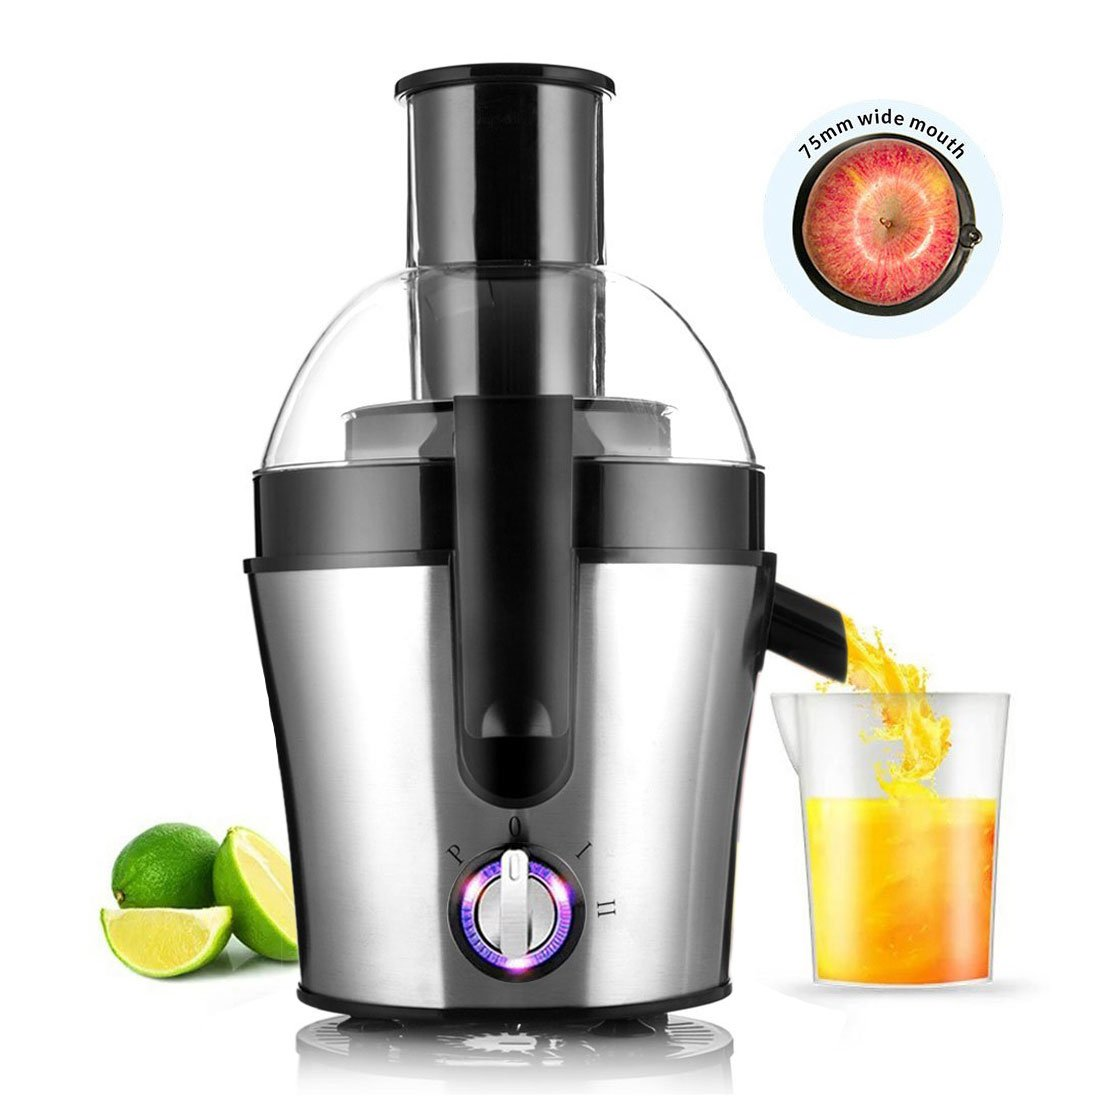 Fruit And Vegetable Juicer Juice Maker Stainless Steel Three Speed Centrifugal Juicer Extractor 300 Watt